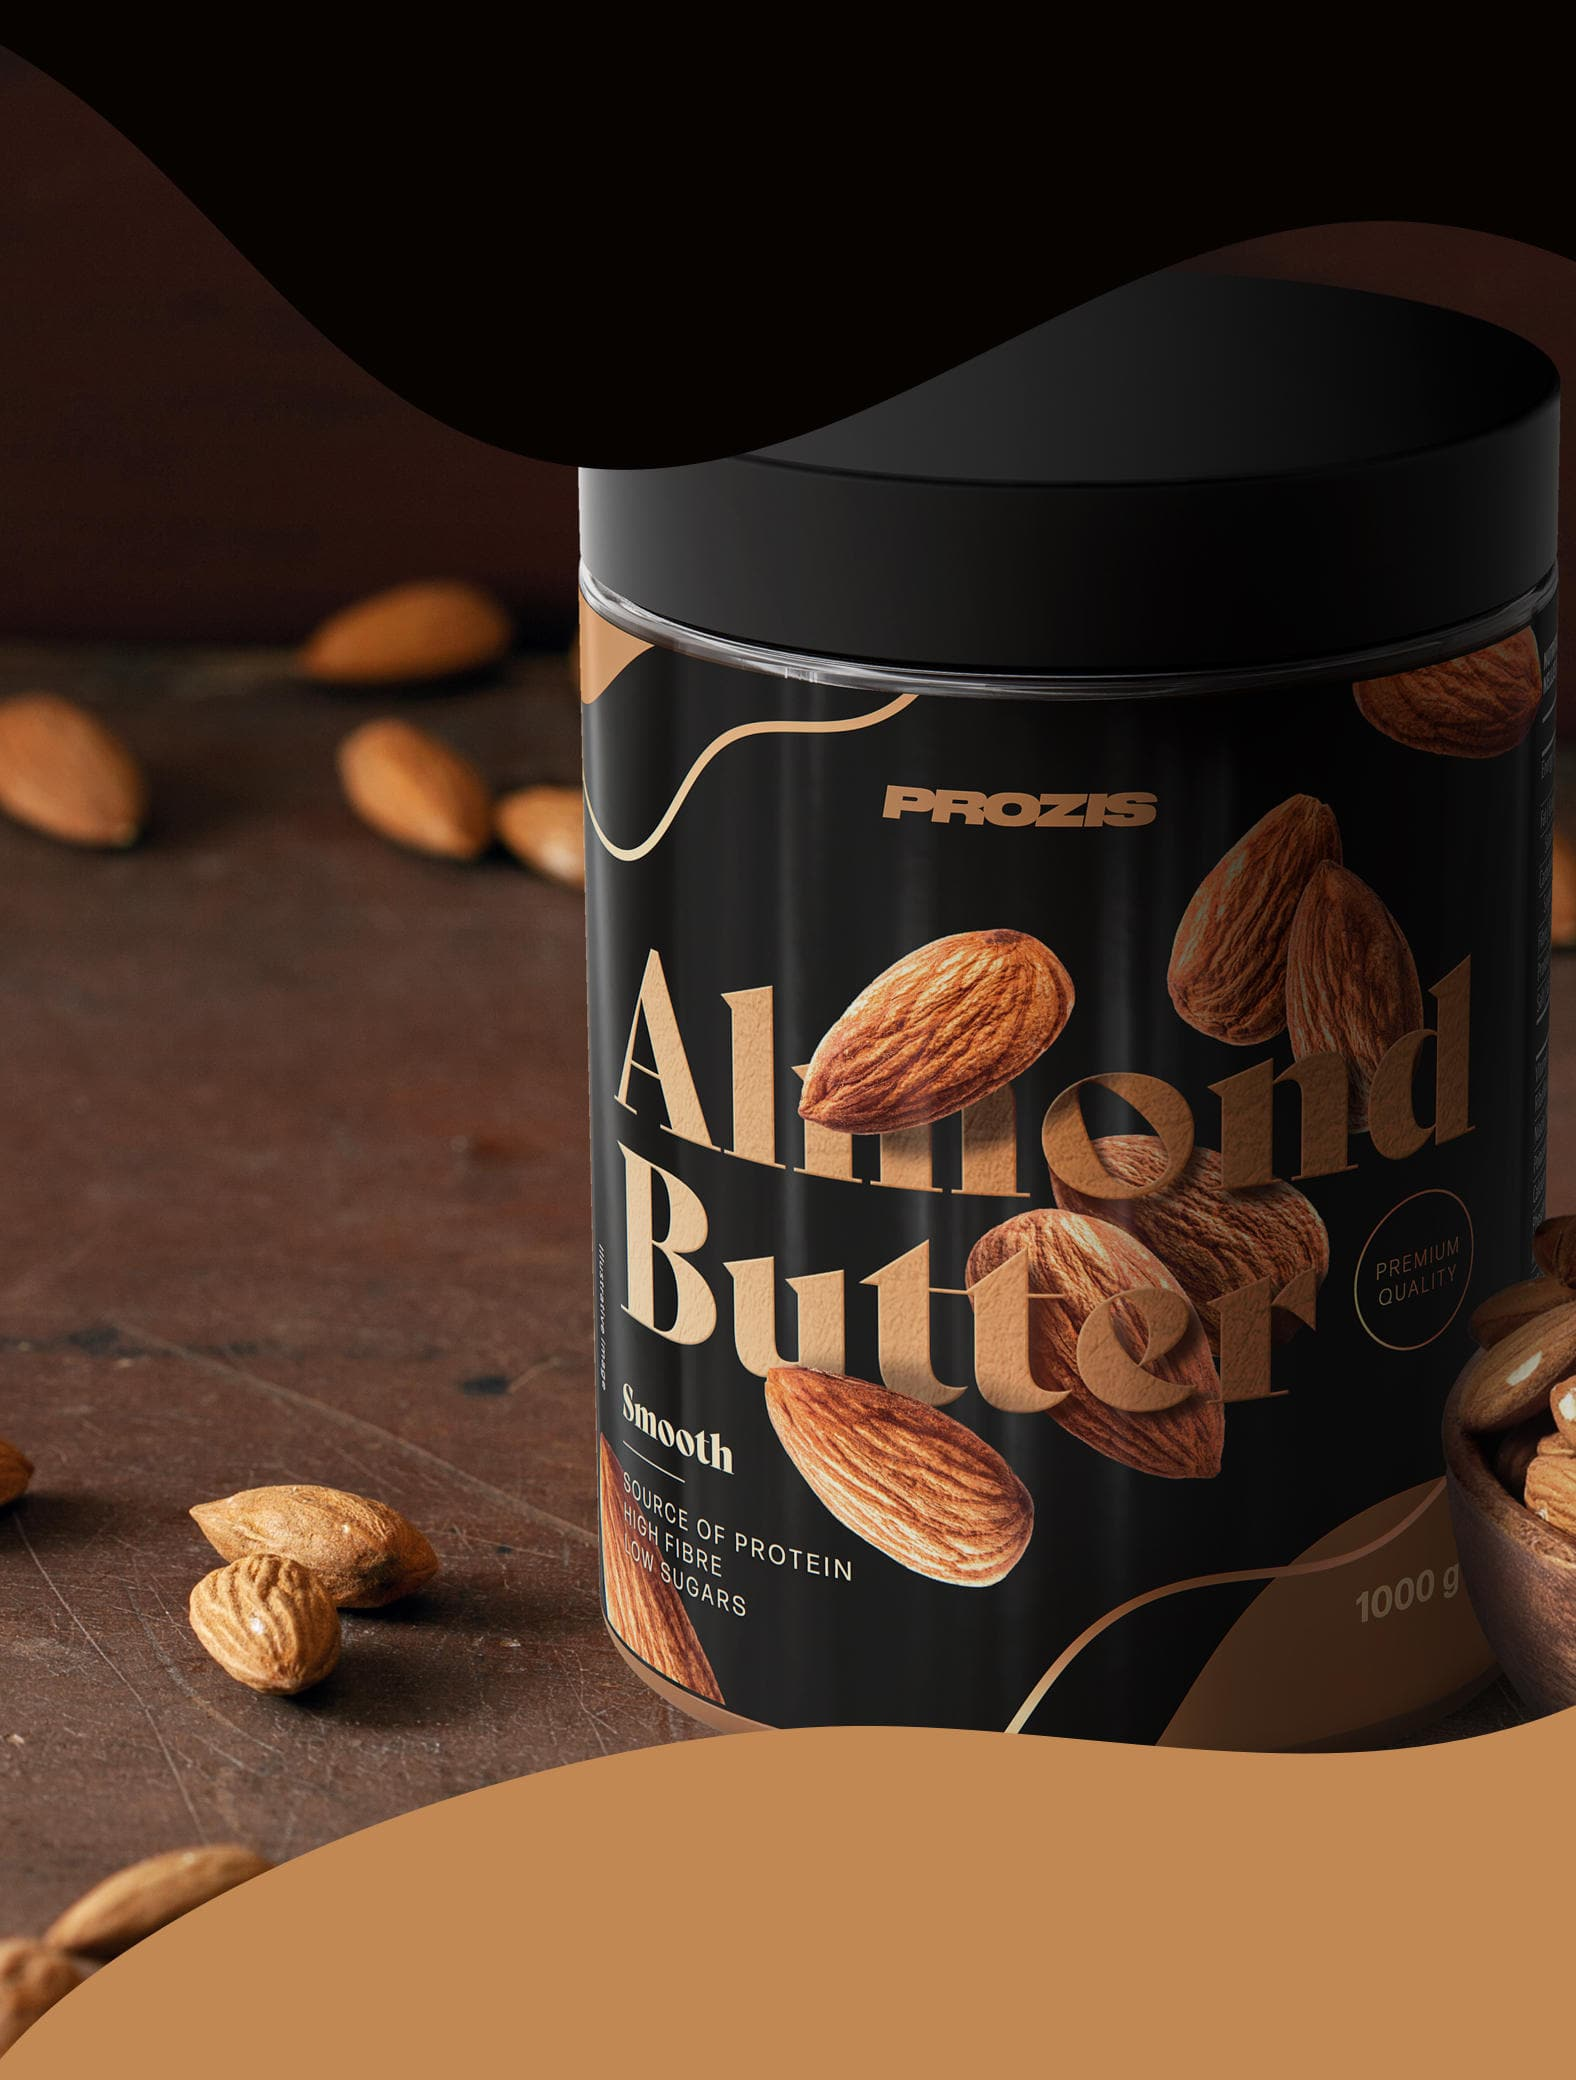 almond butter sverige